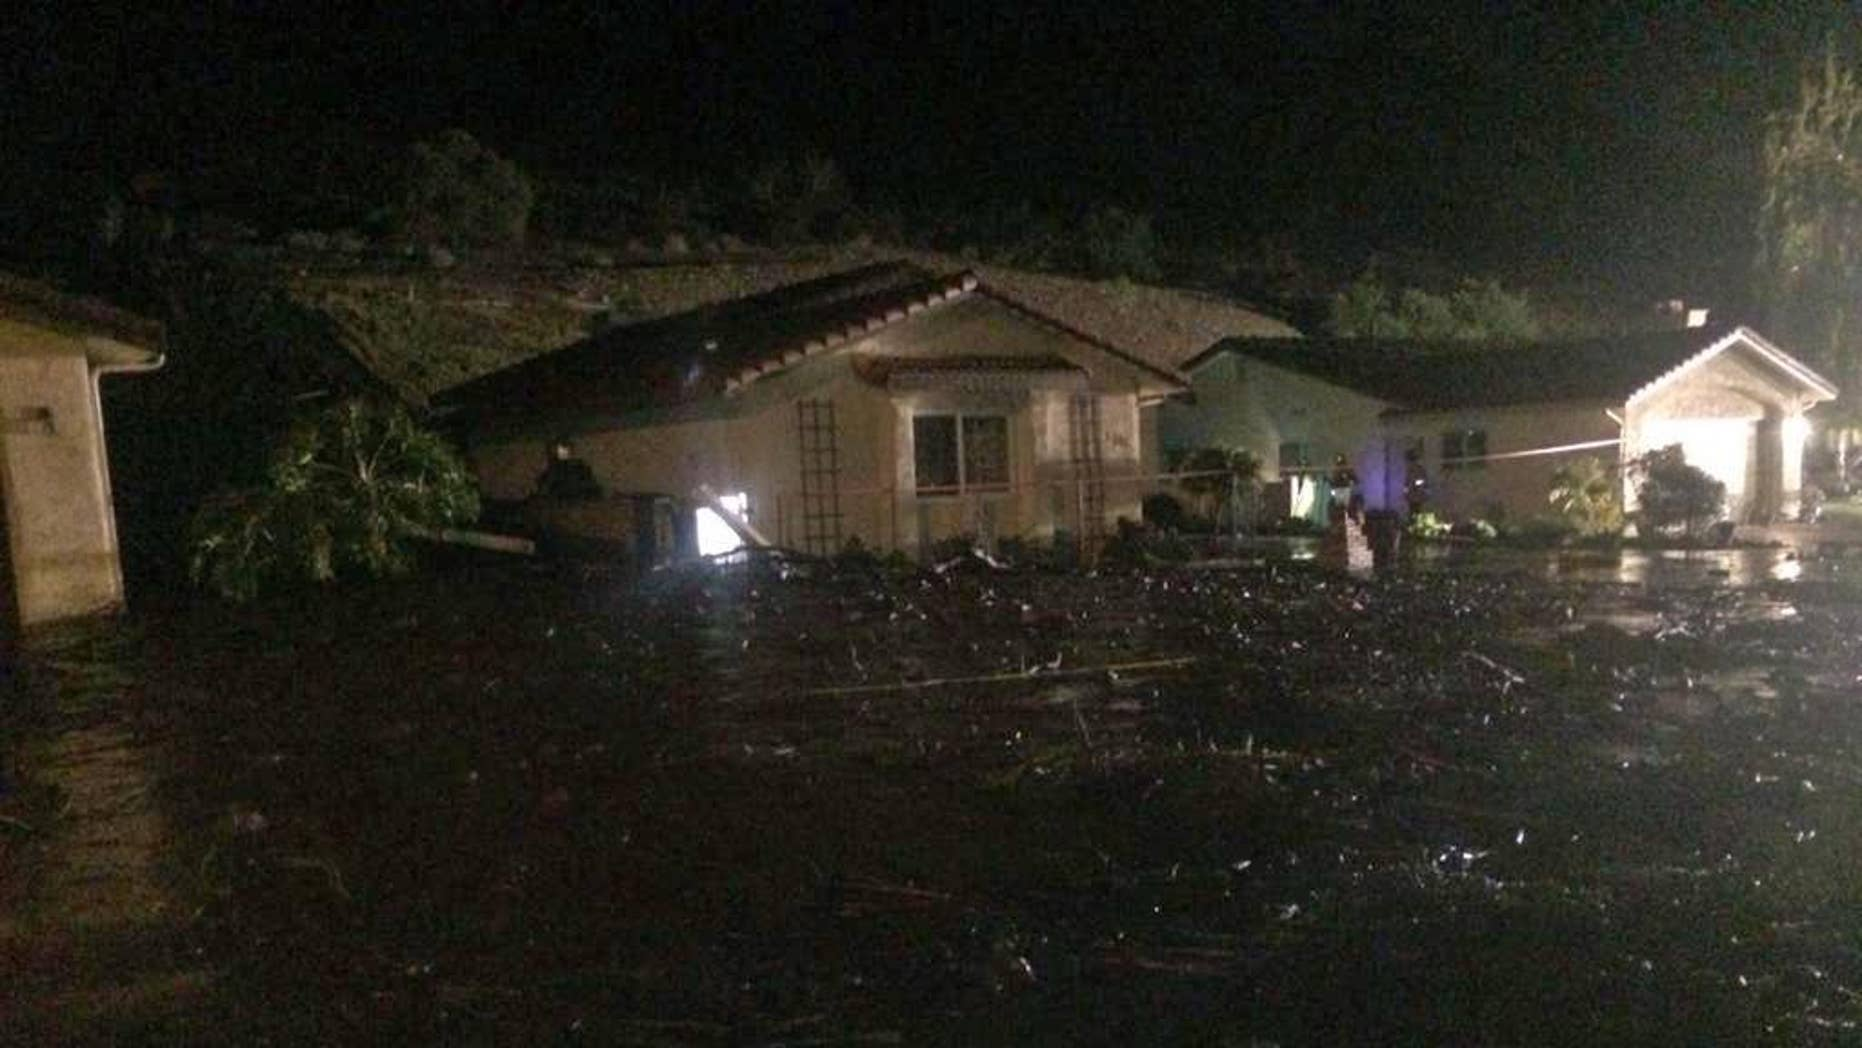 This image provided by the Ventura County Fire Department shows a home on San Como Lane in Camarillo Calif., inundated by mud and debris from a hillside early Saturday Nov. 1, 2014. Fire Capt. Mike Lindbery of the Ventura County Fire Department says residents from about 11 homes were evacuated early Saturday in the neighborhood of Camarillo. (AP Photo/Ventura County Fire Department, Capt. Mike Lindbery)